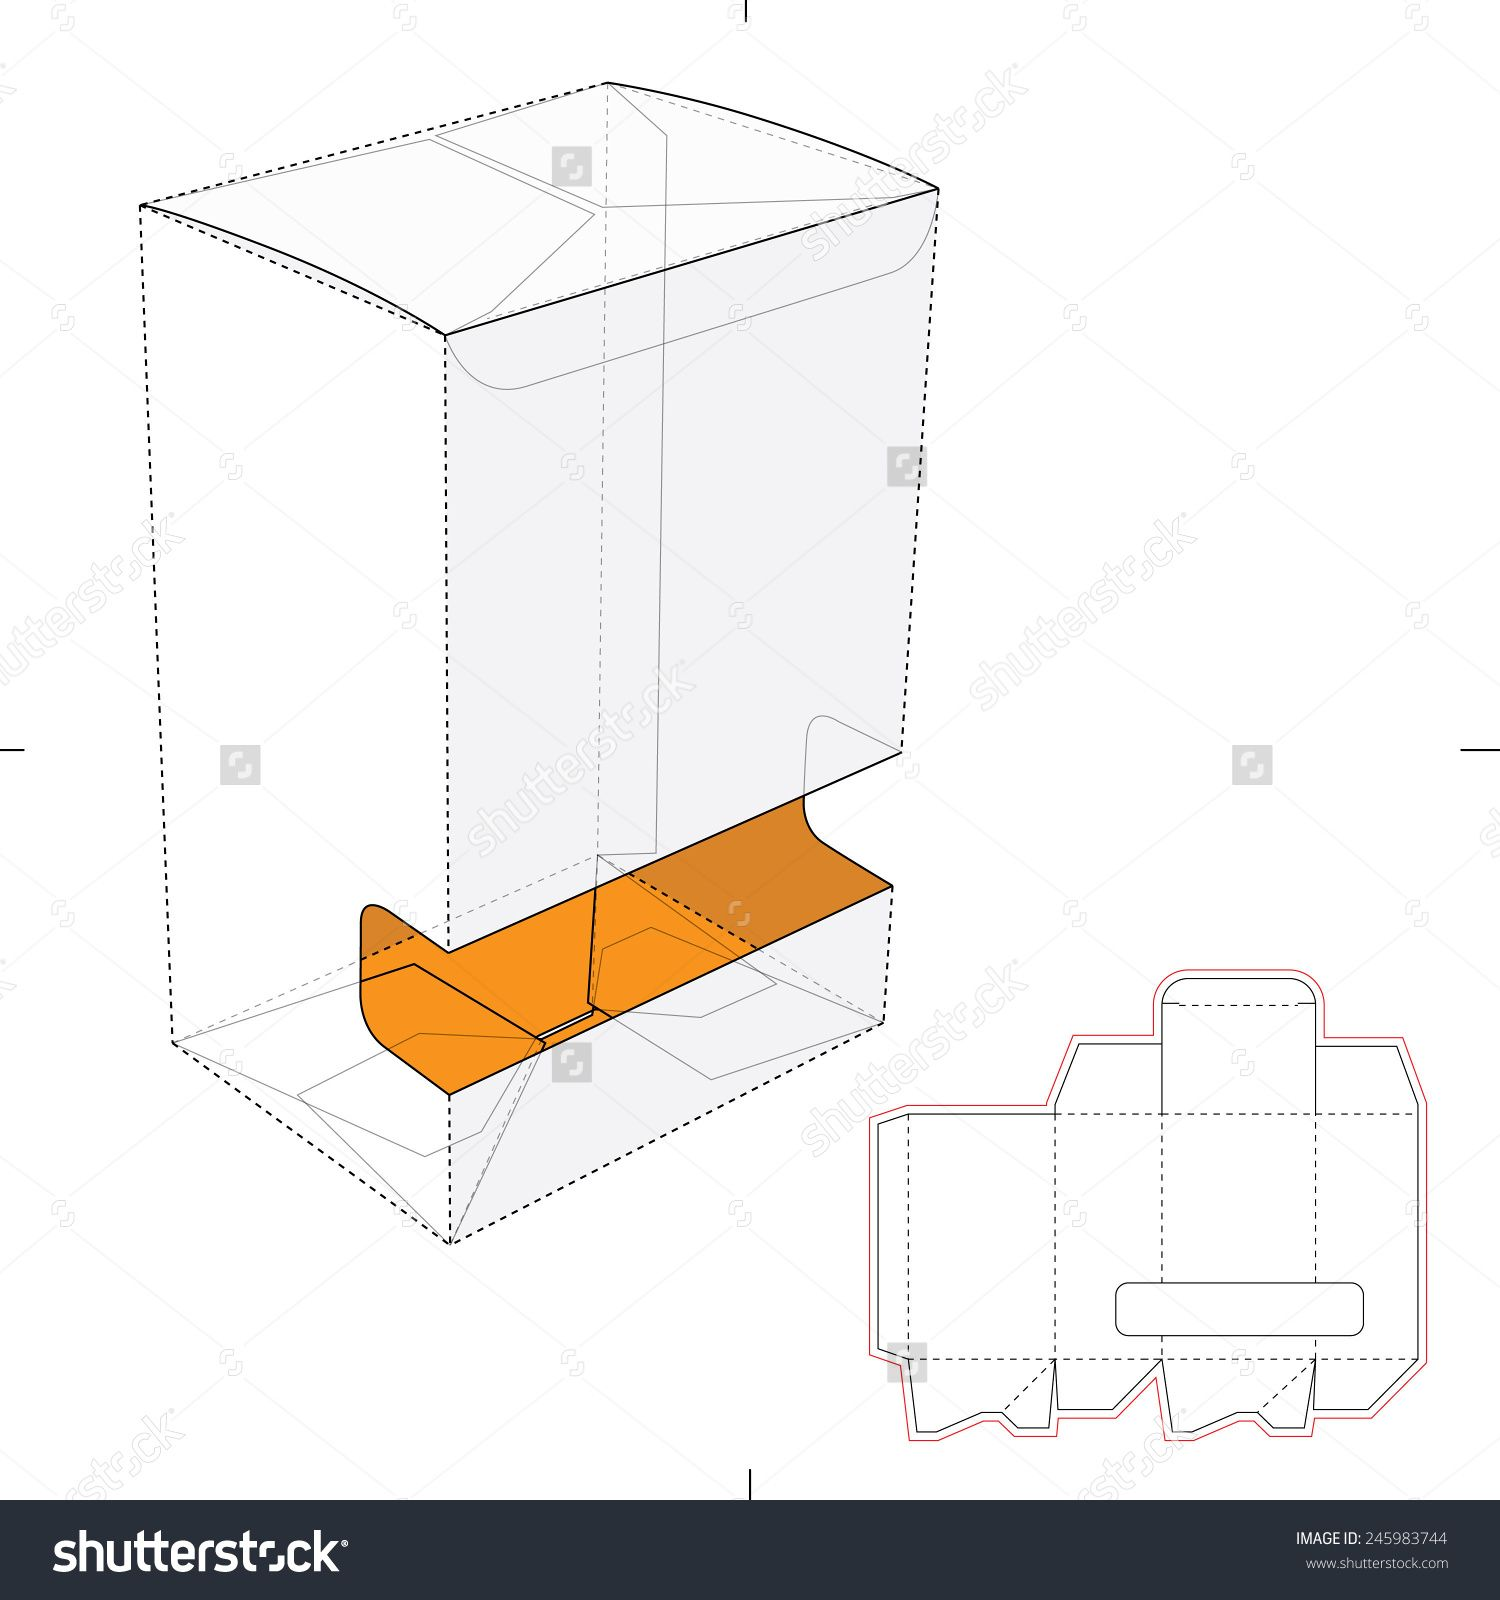 Gravity Fed Dispenser Box With Die Cut Template Stock Vector Illustration 245983744 Shutterstock